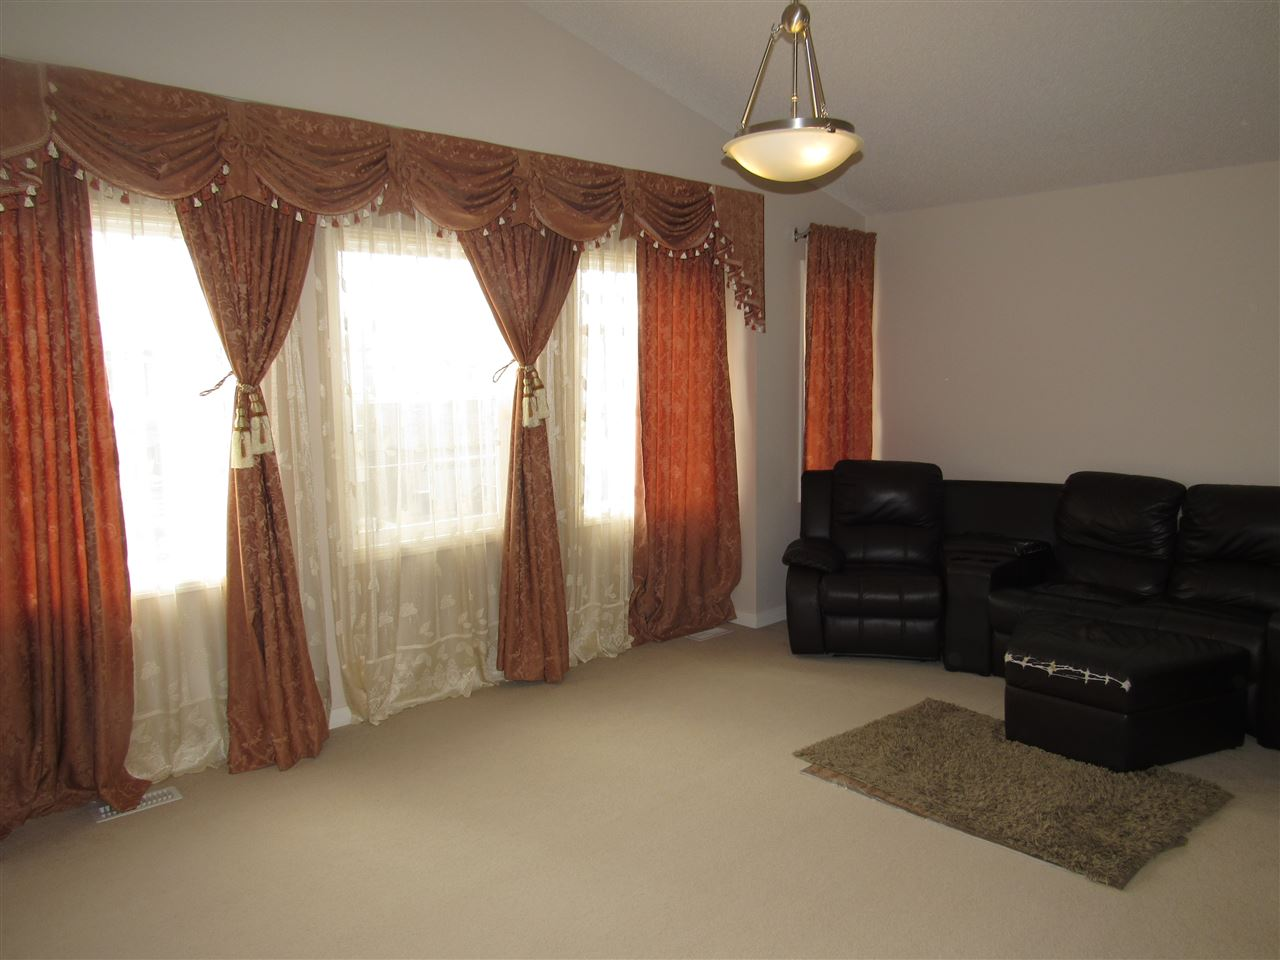 Photo 15: 7904 173 Avenue in Edmonton: Zone 28 House for sale : MLS(r) # E4058384